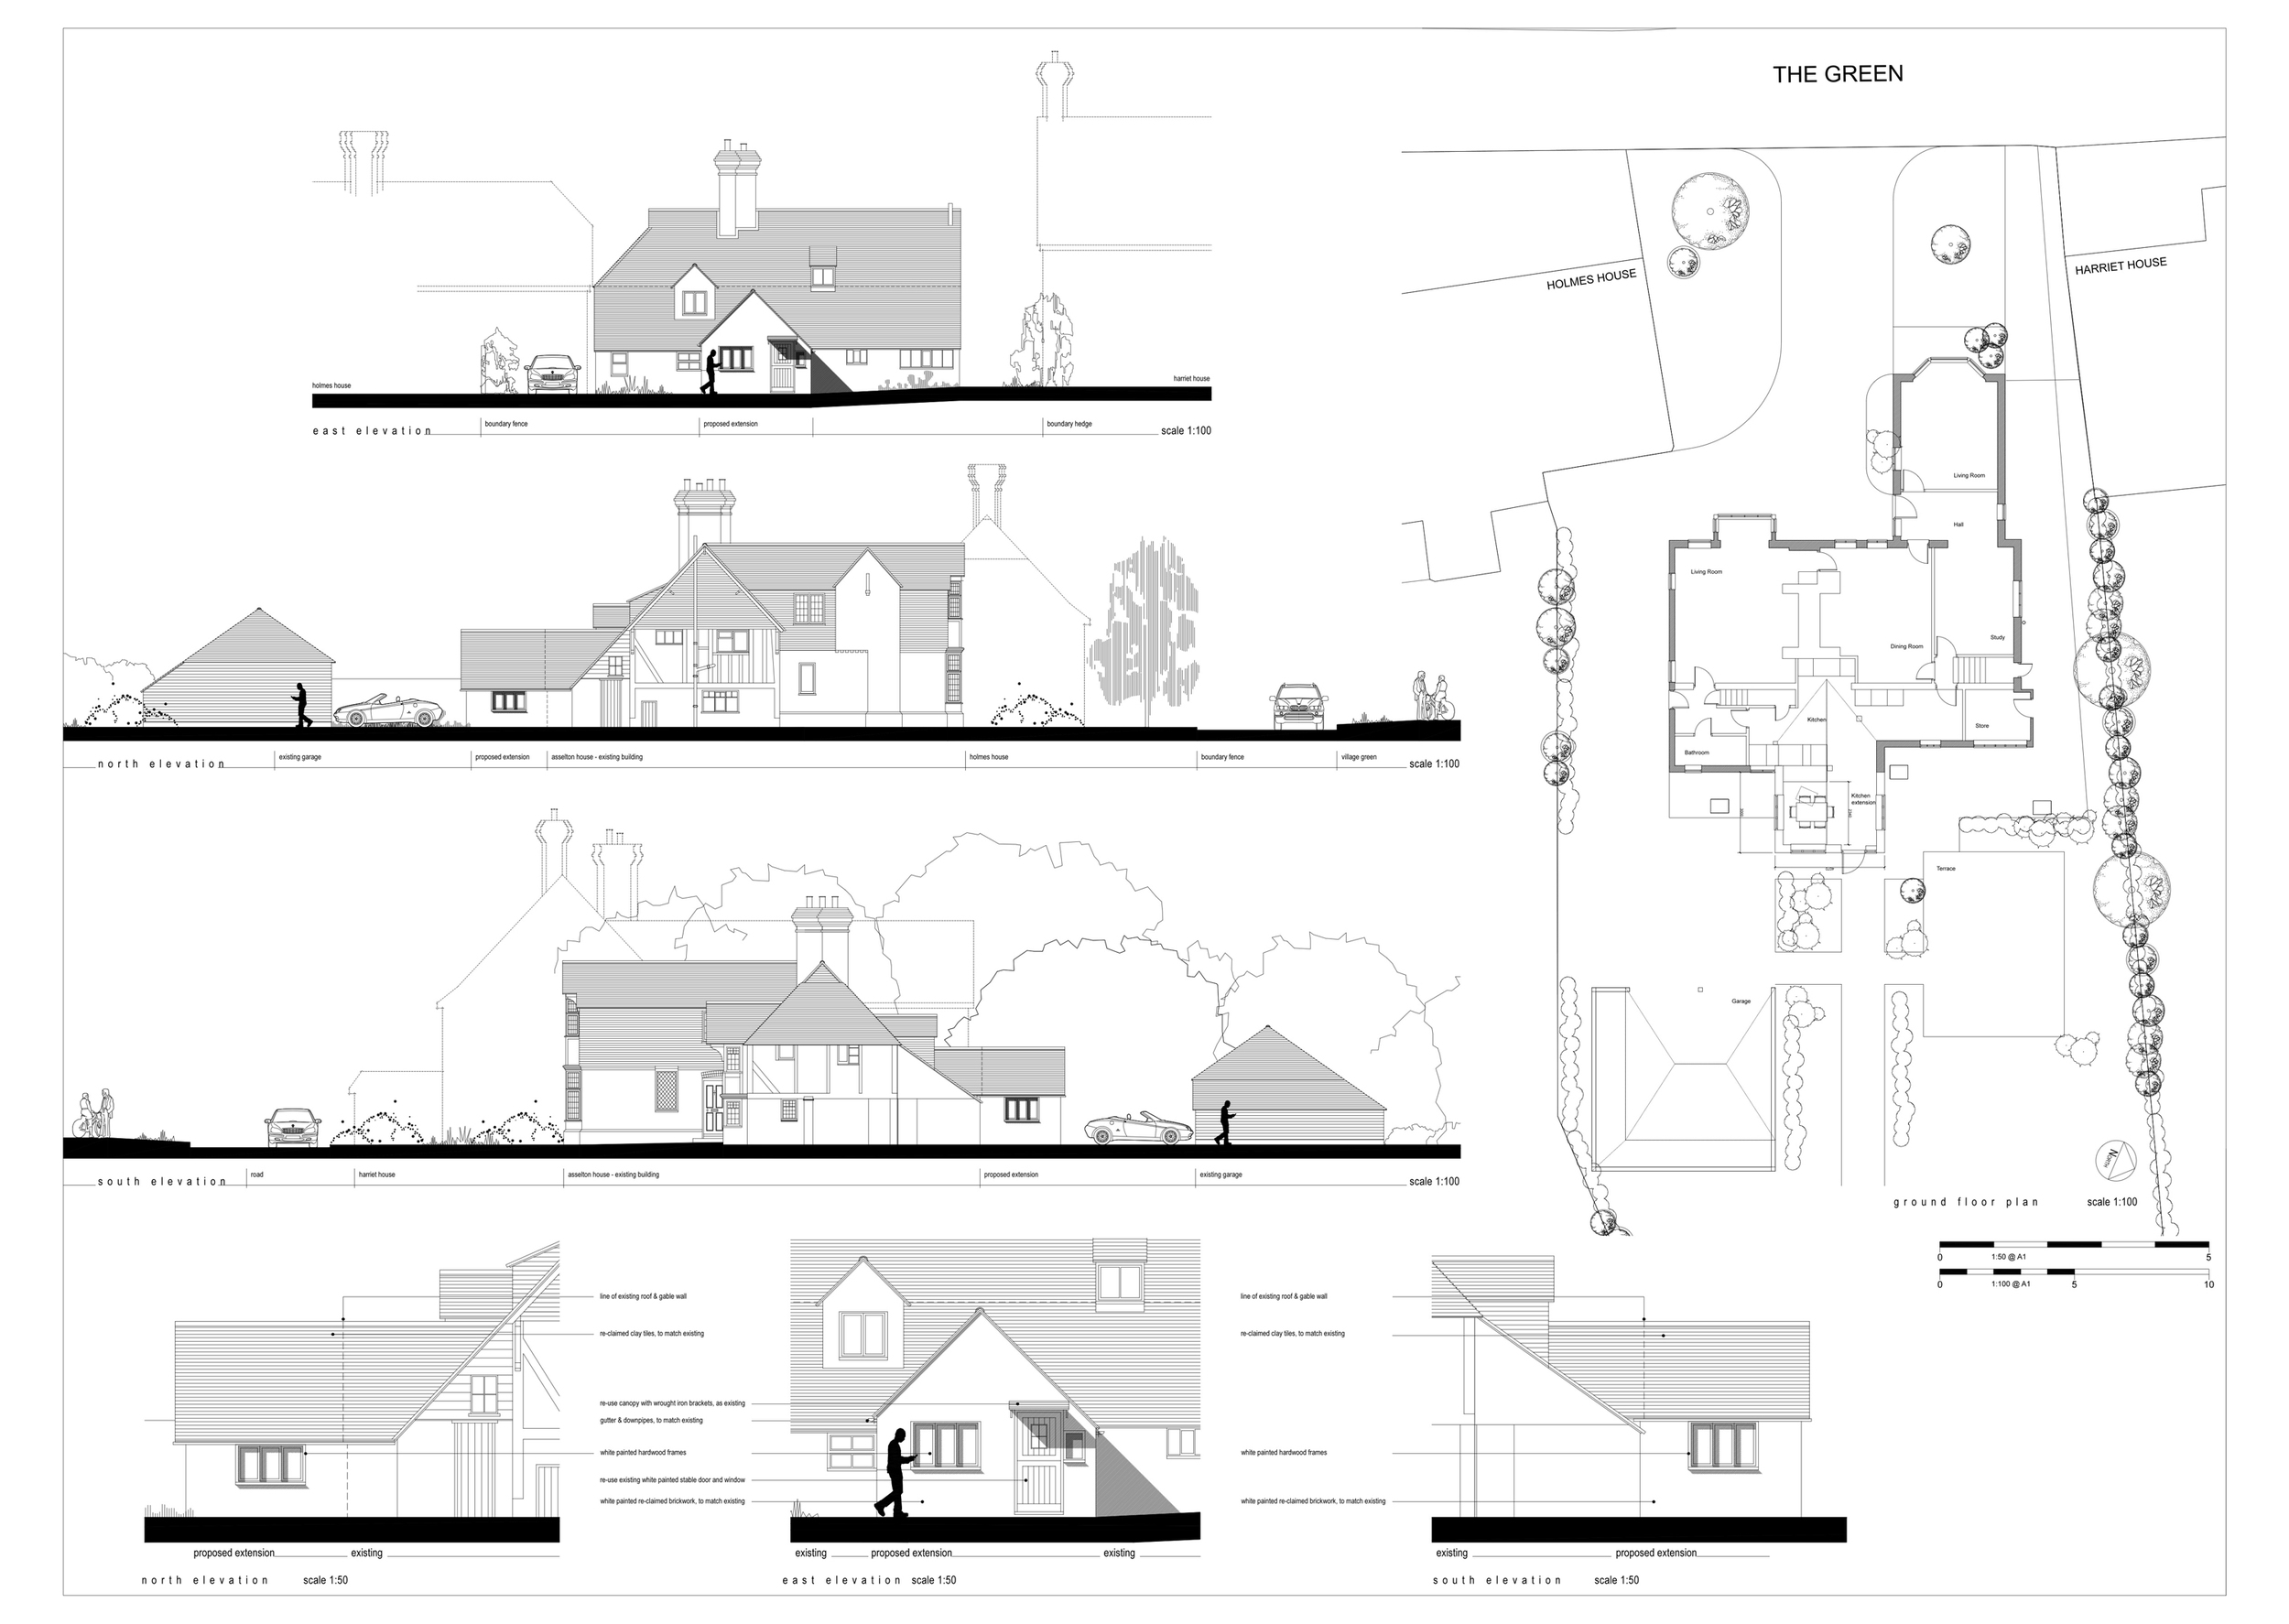 A1 Example of Submission for Planning application